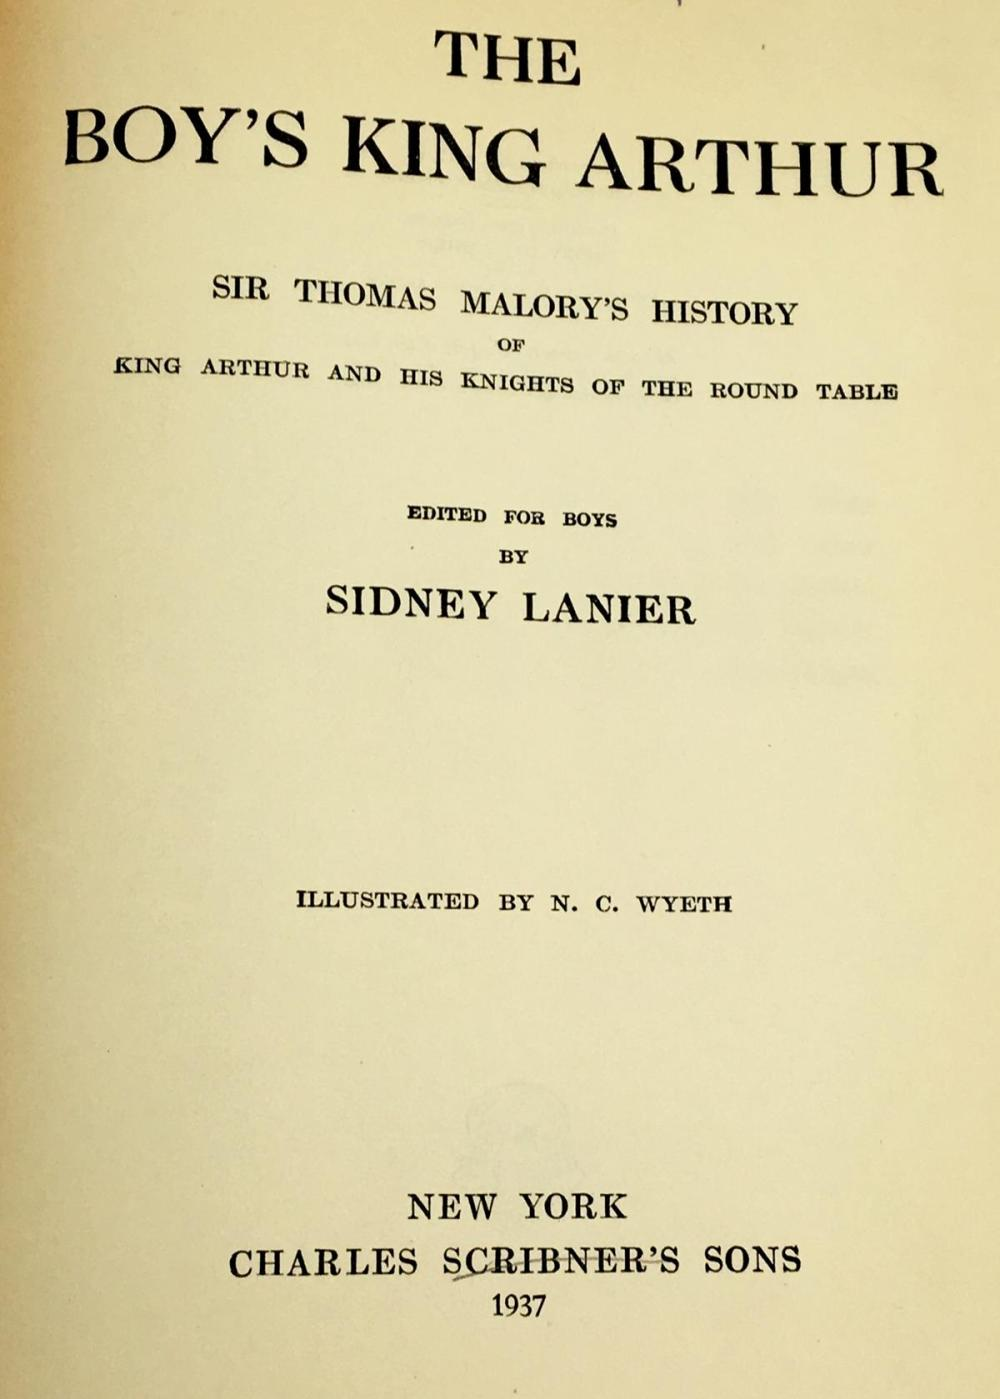 1937 The Boy's King Arthur: Sir Thomas Malory's History by Sidney Lanier ILLUSTRATED by N.C. Wyeth